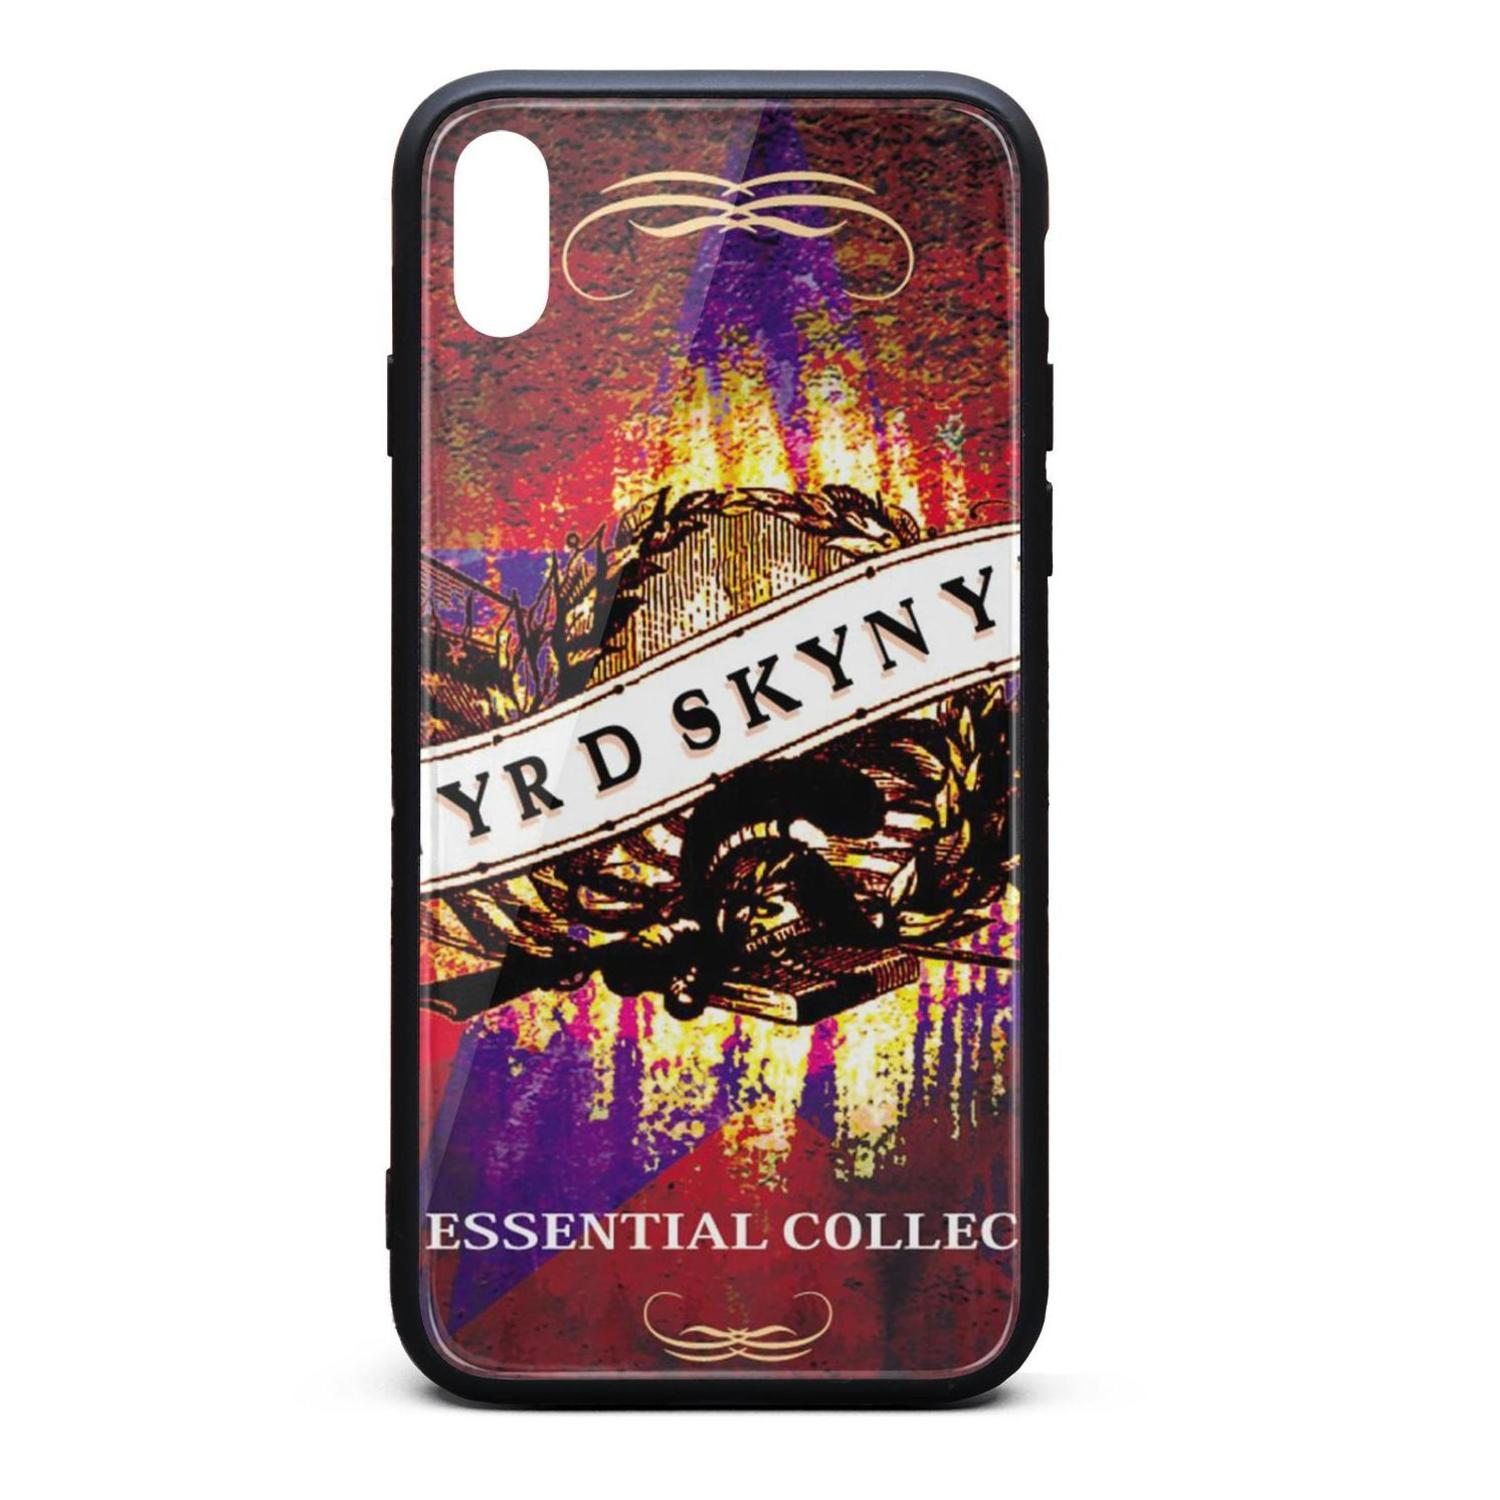 huge discount 679e6 8ec4b IPhone Xs Max Case 6.5 inch Lynyrd Skynyrd The essential Collection  anti-scratch screen protectors custom TPU Rubber Gel Silicone phone case